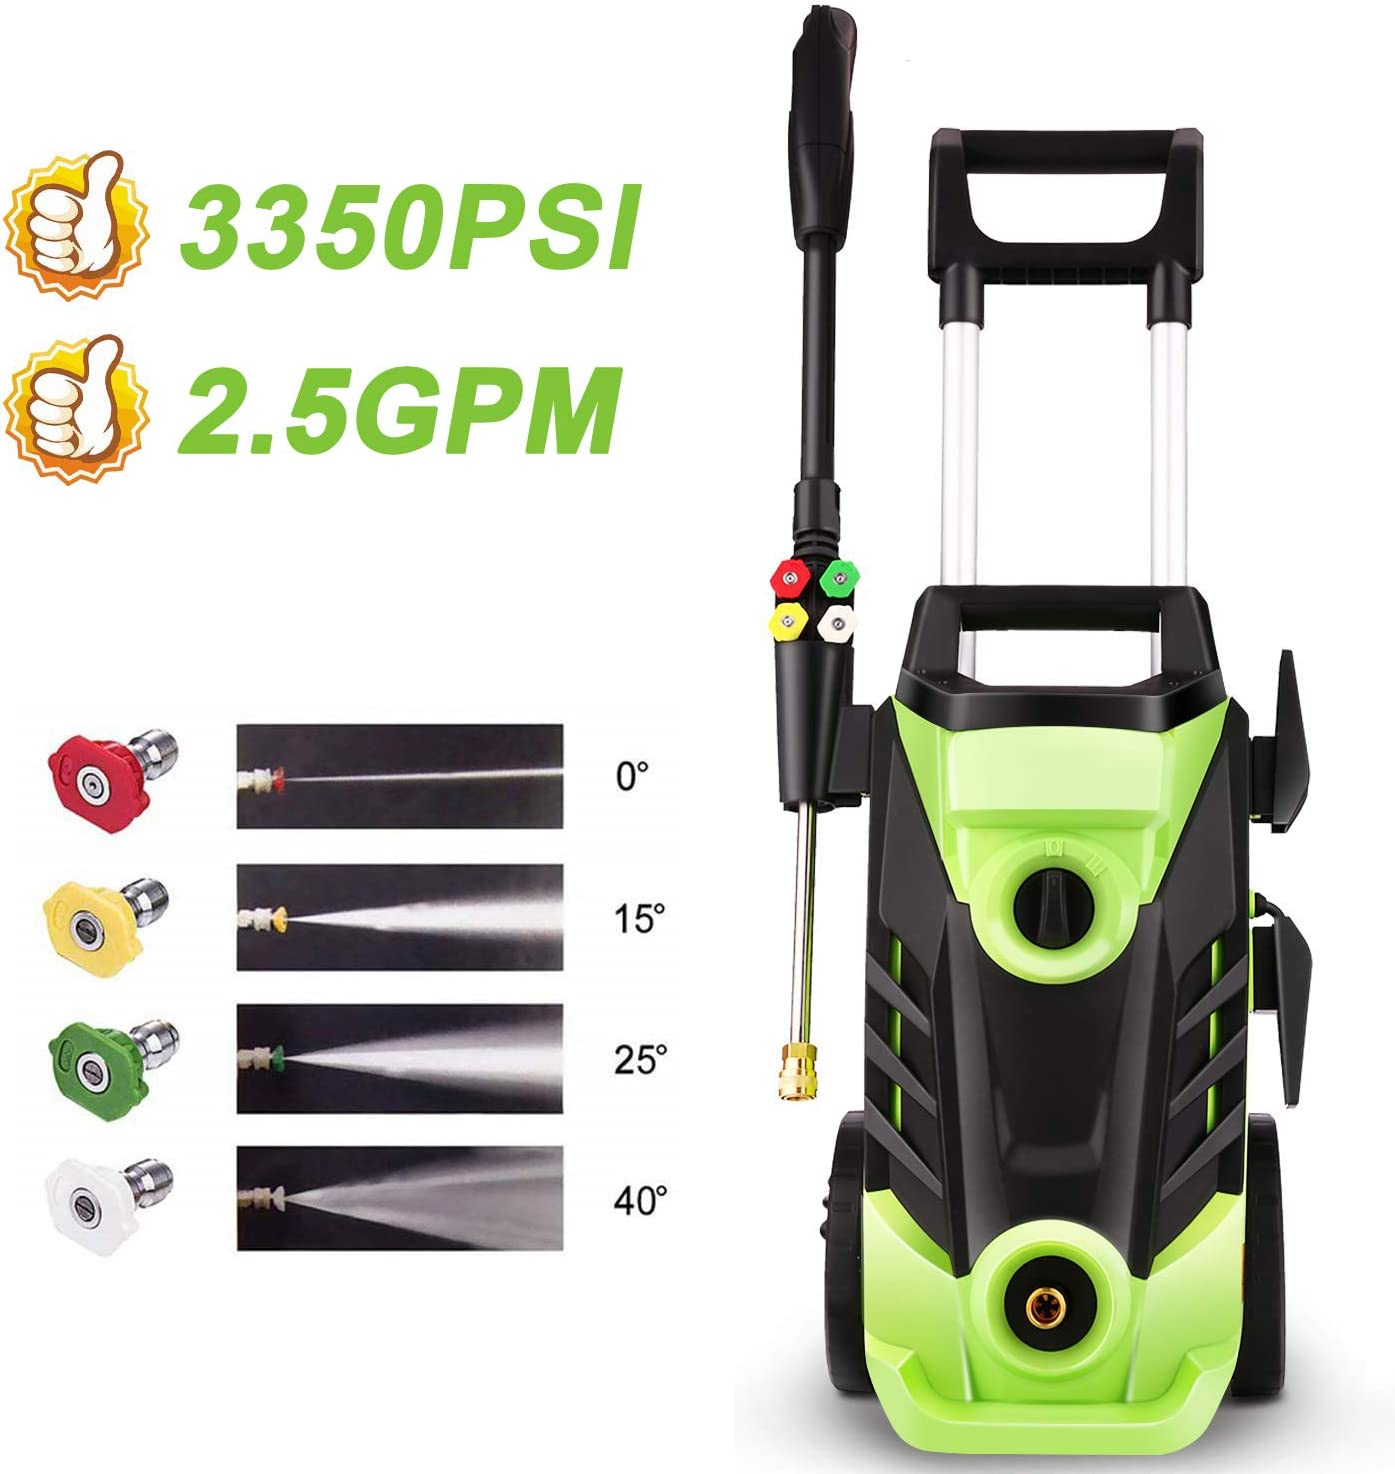 Free Amazon Promo Code 2020 for 3350PSI Electric Pressure Washer